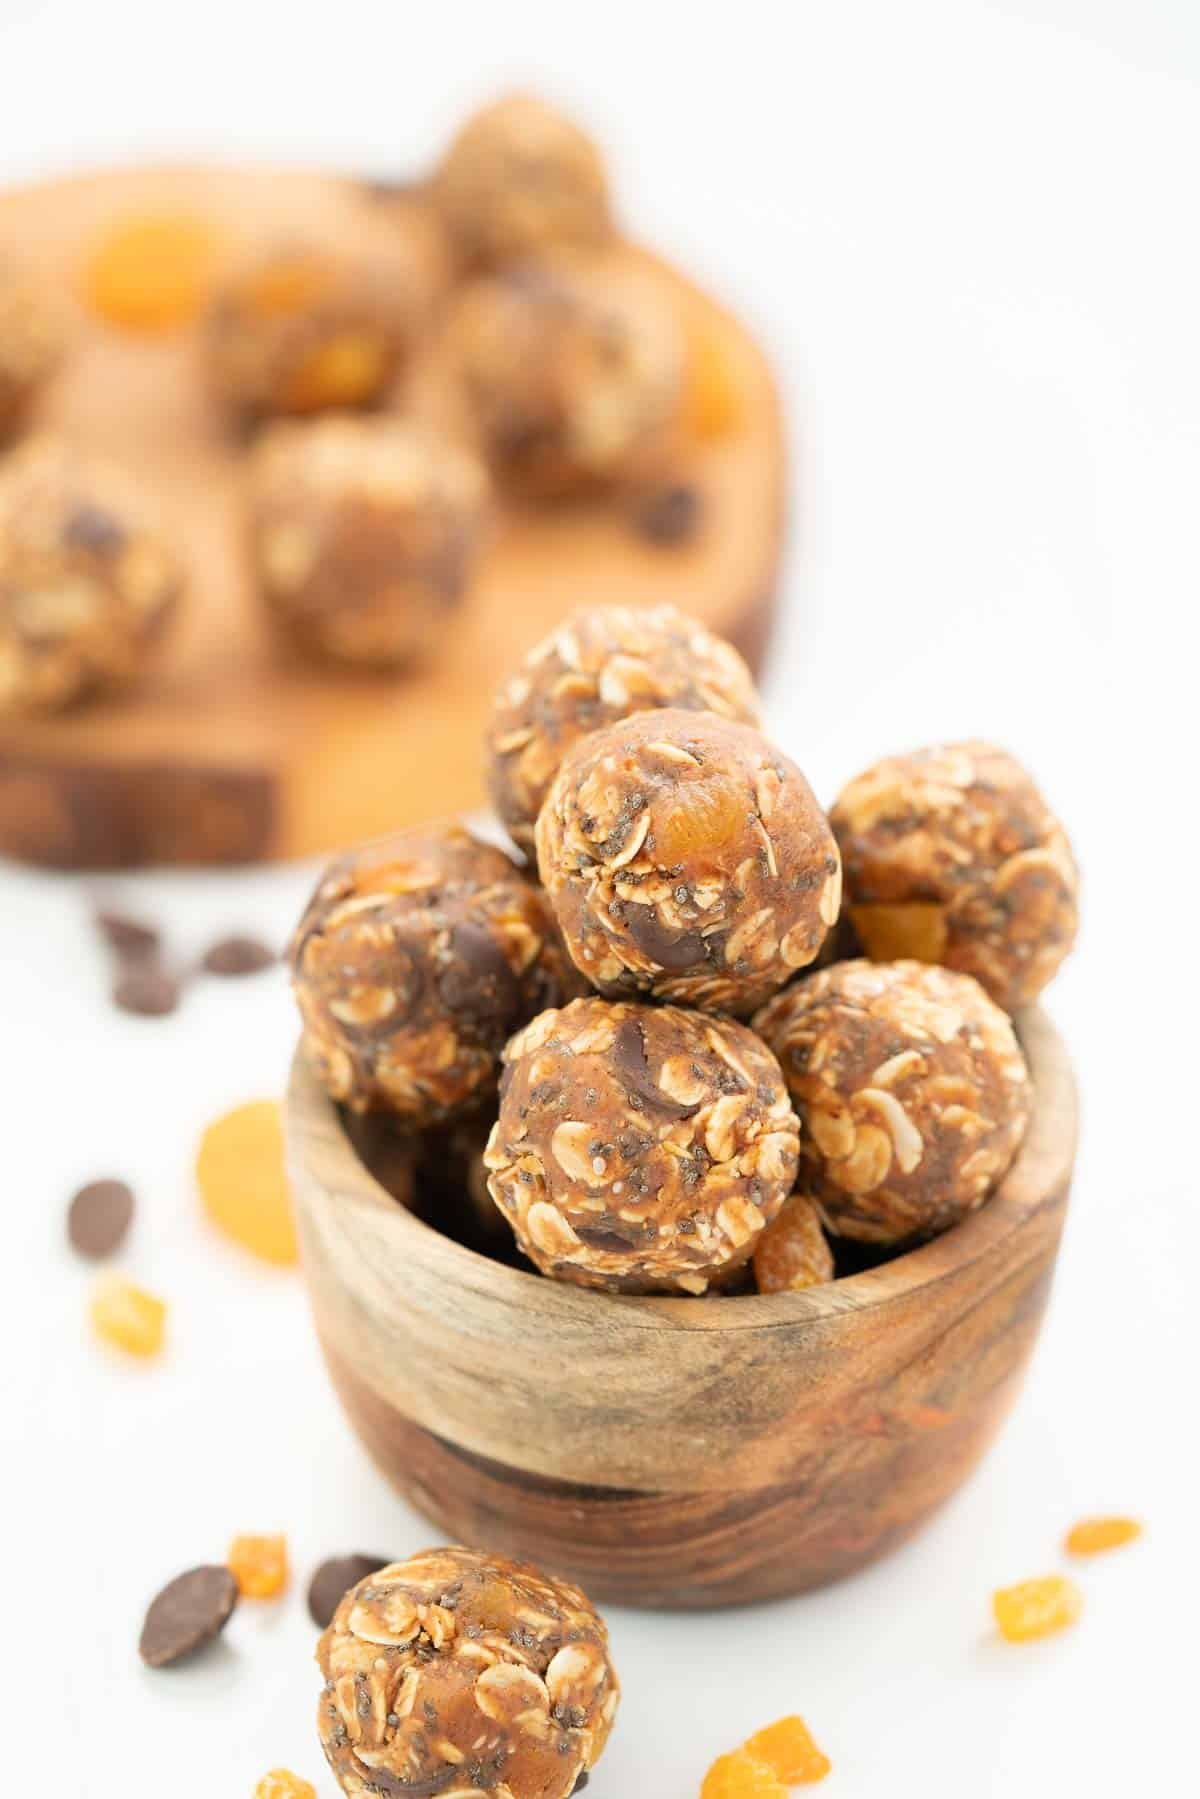 A small wooden bowl of apricot oat balls.